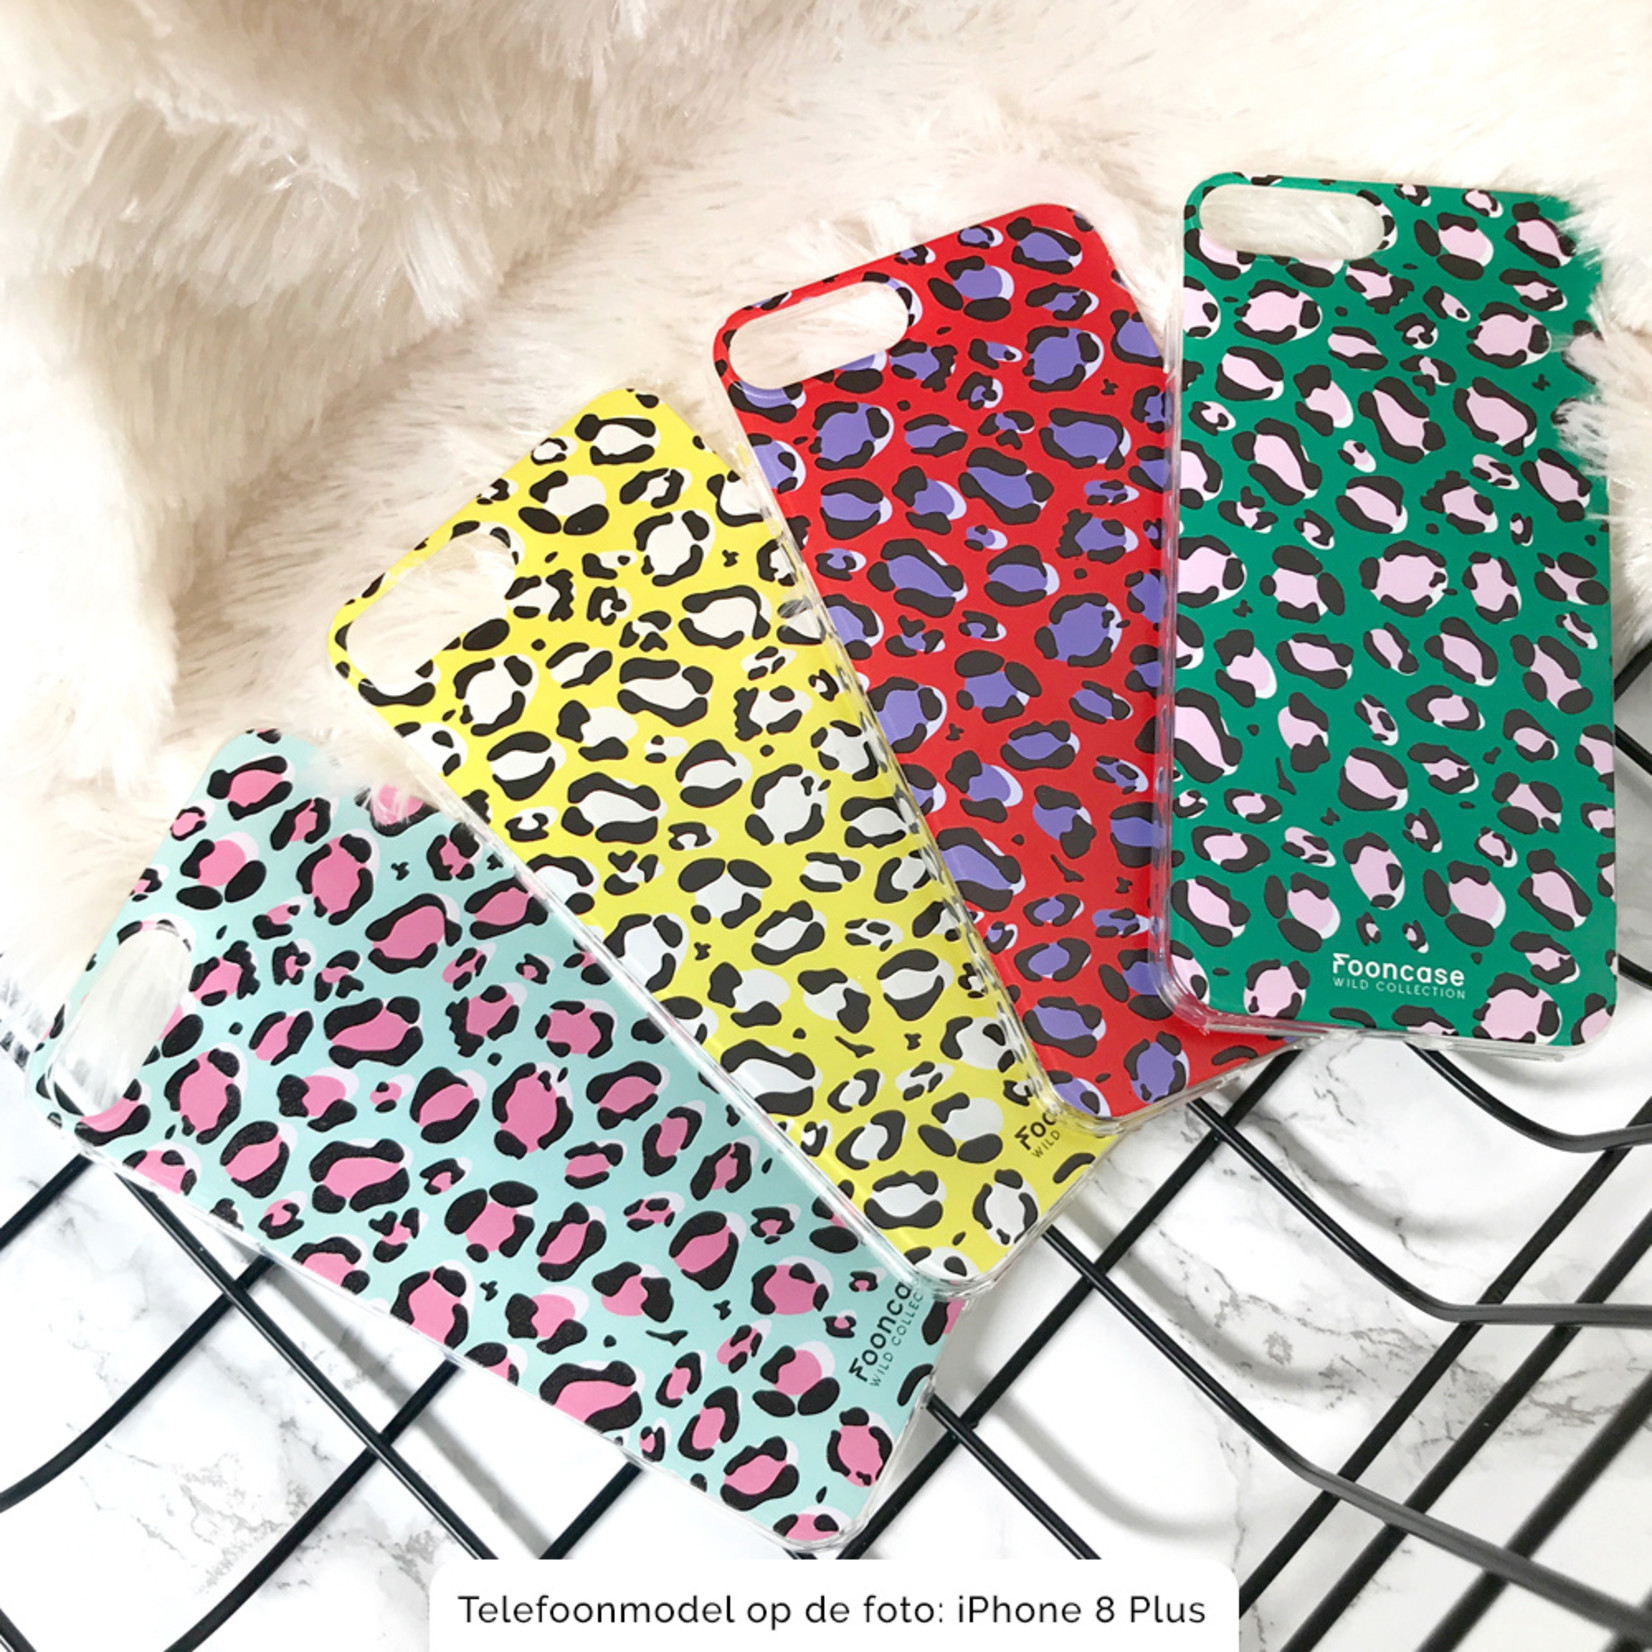 FOONCASE Huawei P30 hoesje TPU Soft Case - Back Cover - WILD COLLECTION / Luipaard / Leopard print / Blauw